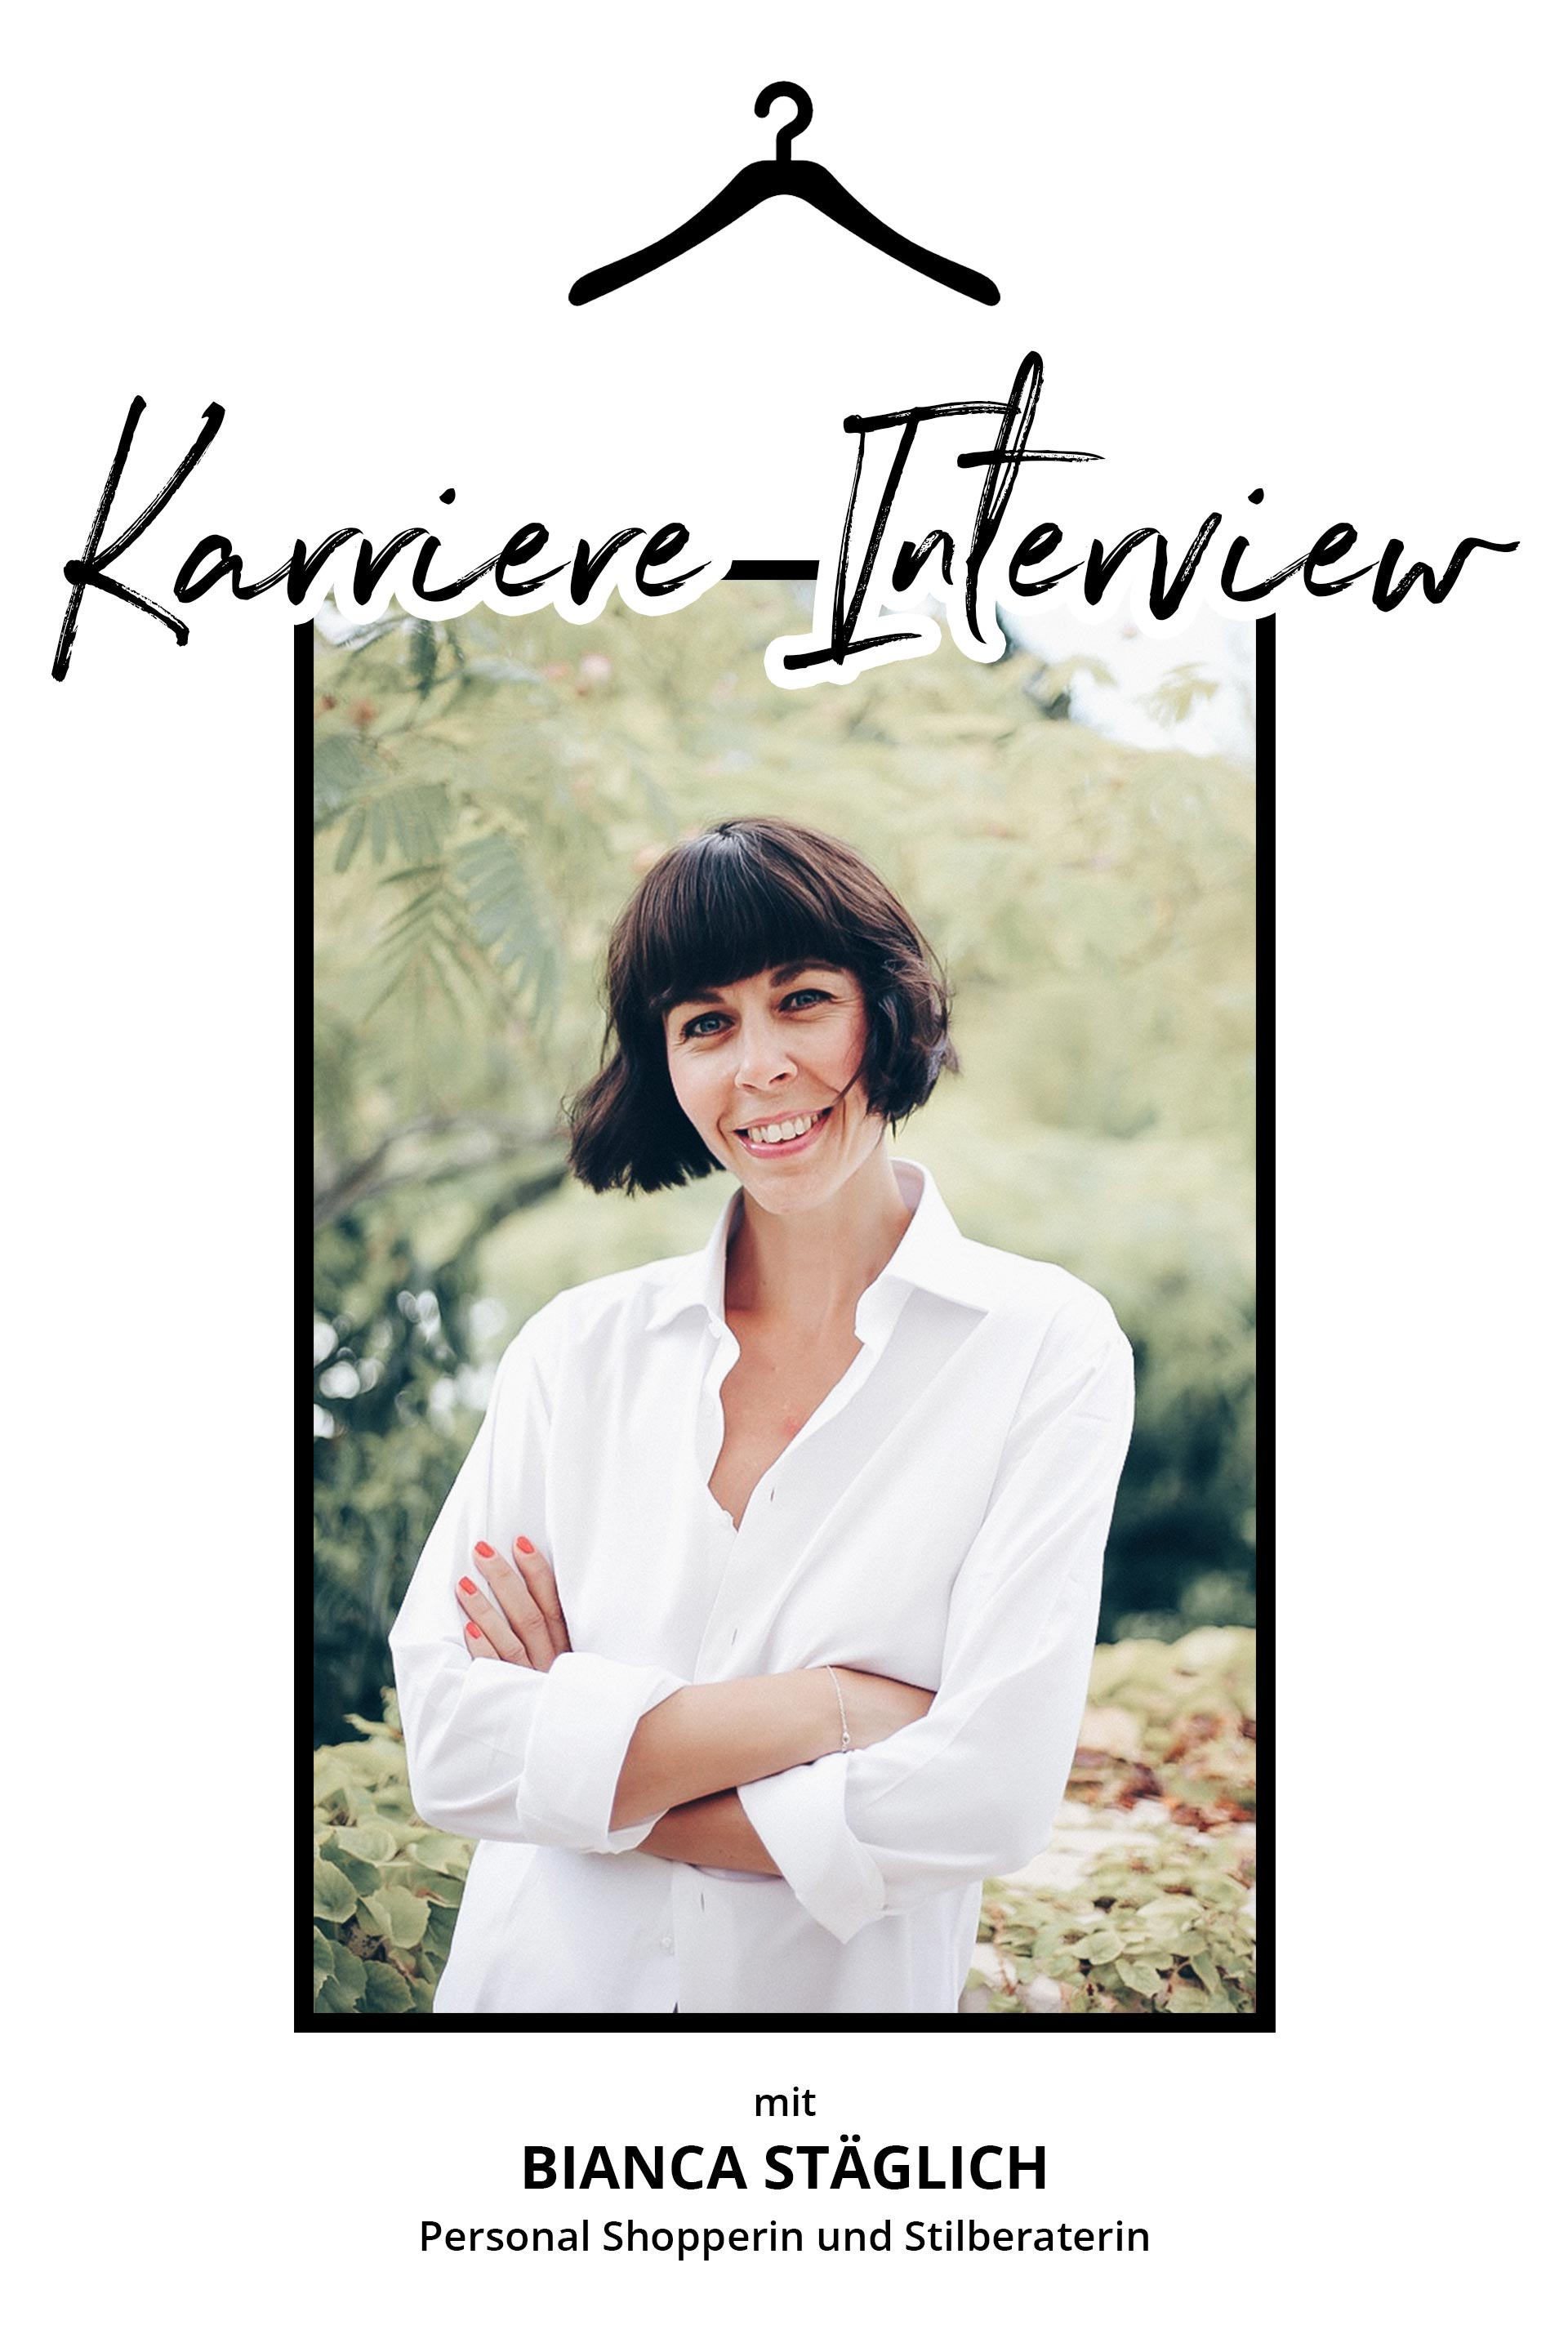 Karriereinterview, Job Stories, Stilfrage, Personal Shopperin, Personal Stylist, Karriere Blog, Woman at work, selbstständig arbeiten, www.whoismocca.com